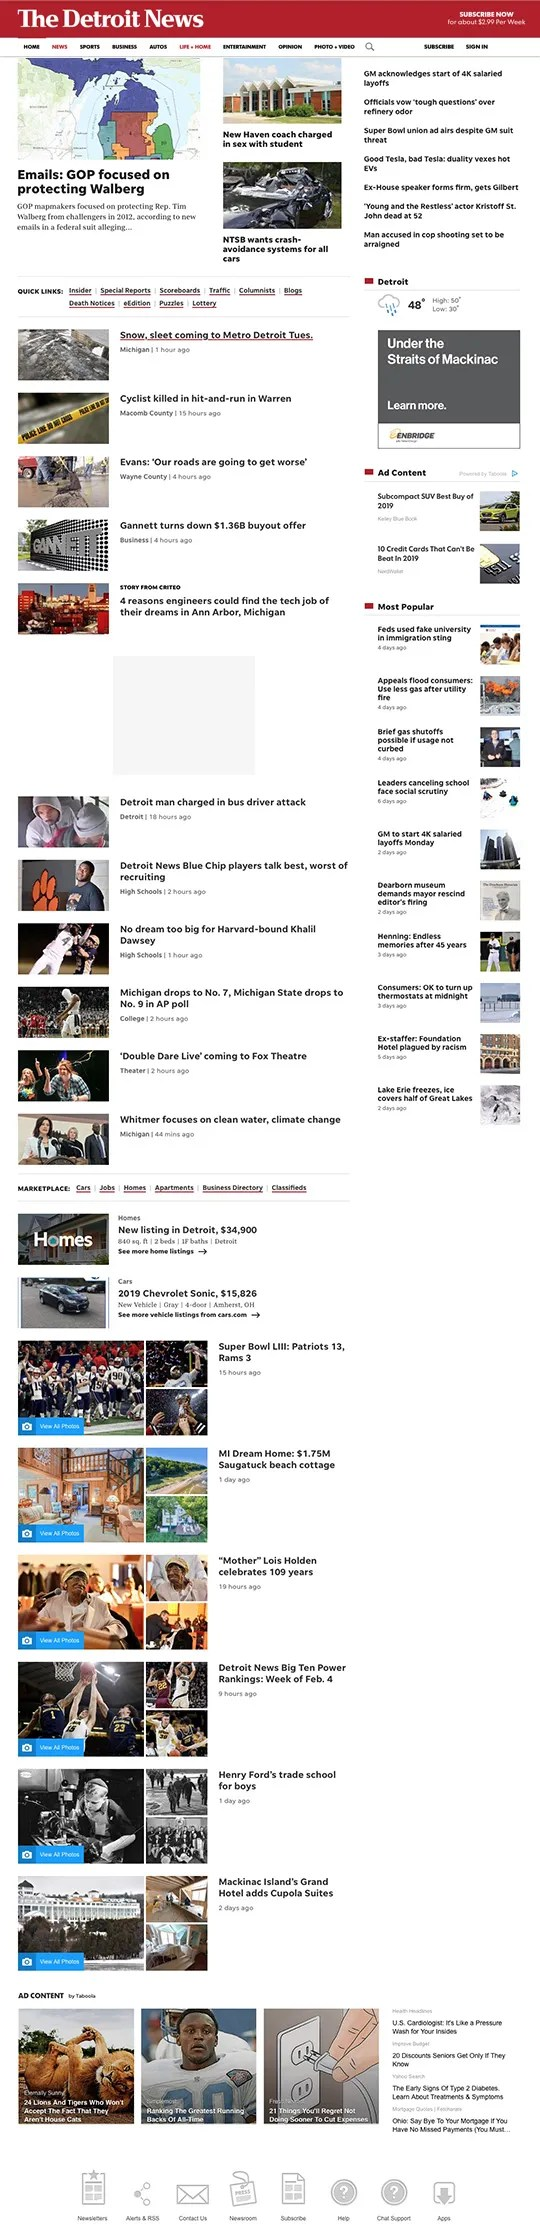 How to navigate the new Detroit News website